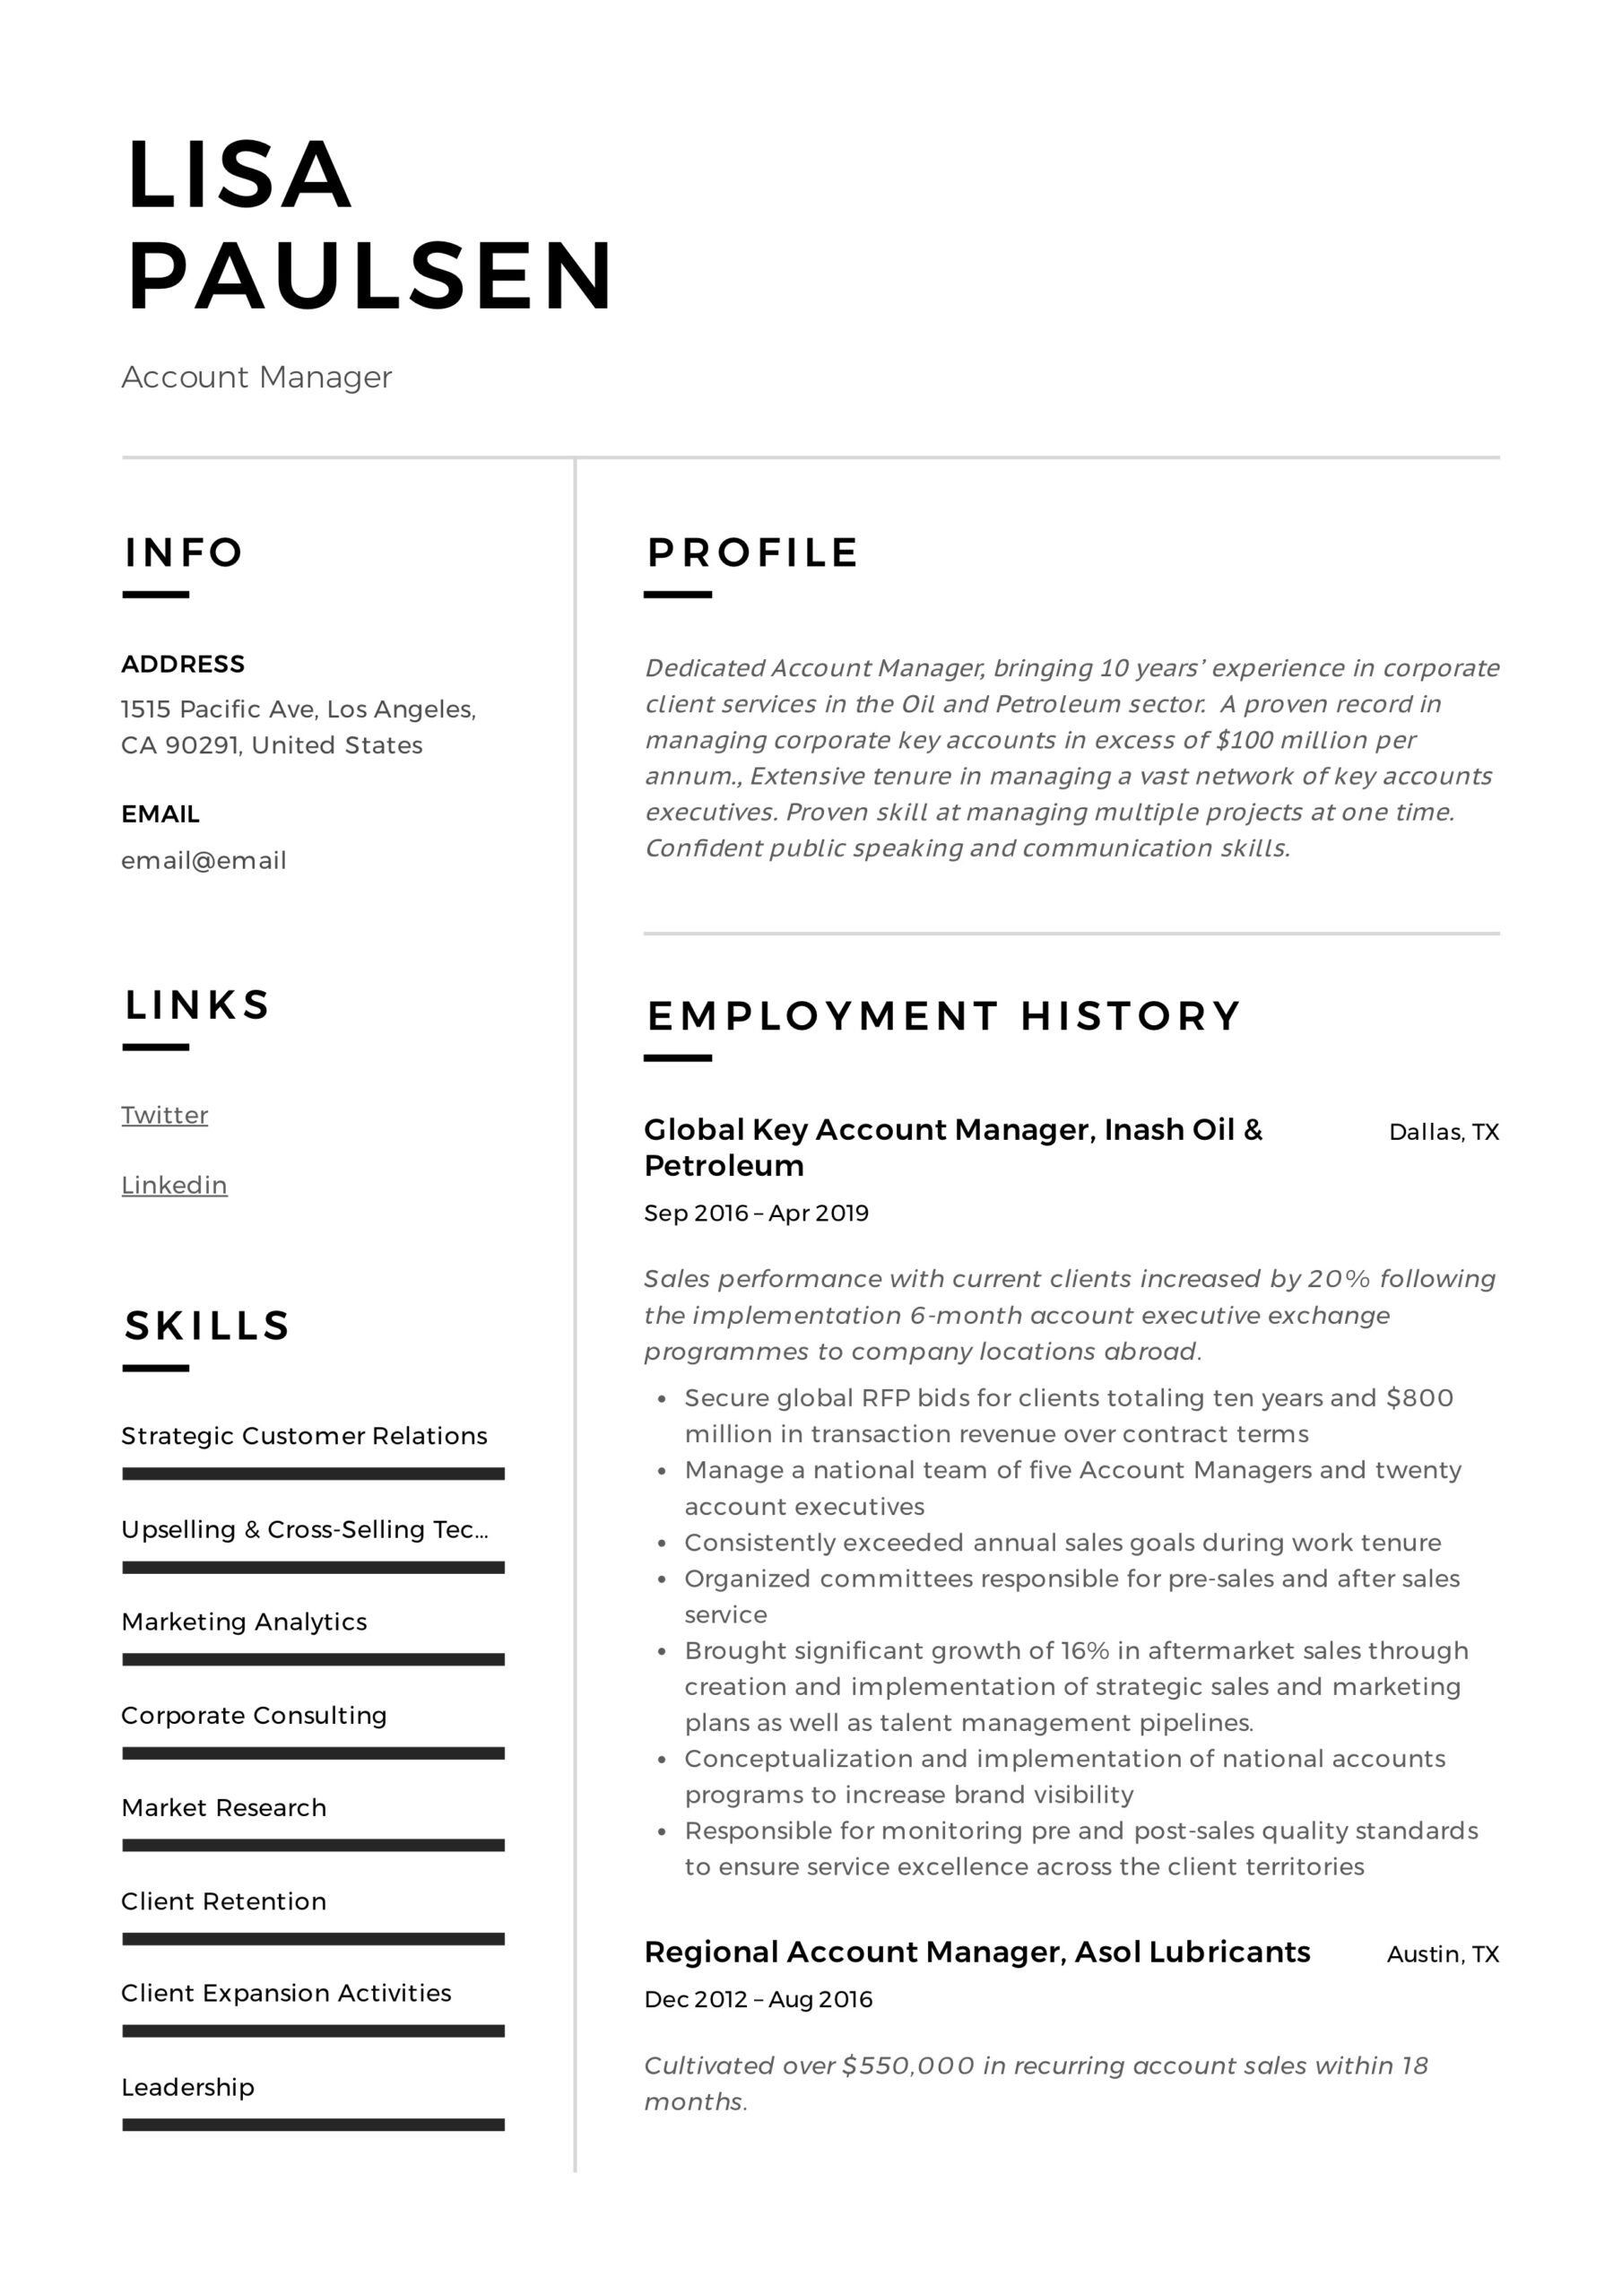 account manager resume writing guide examples corporate lisa paulsen sterile processing Resume Corporate Account Manager Resume